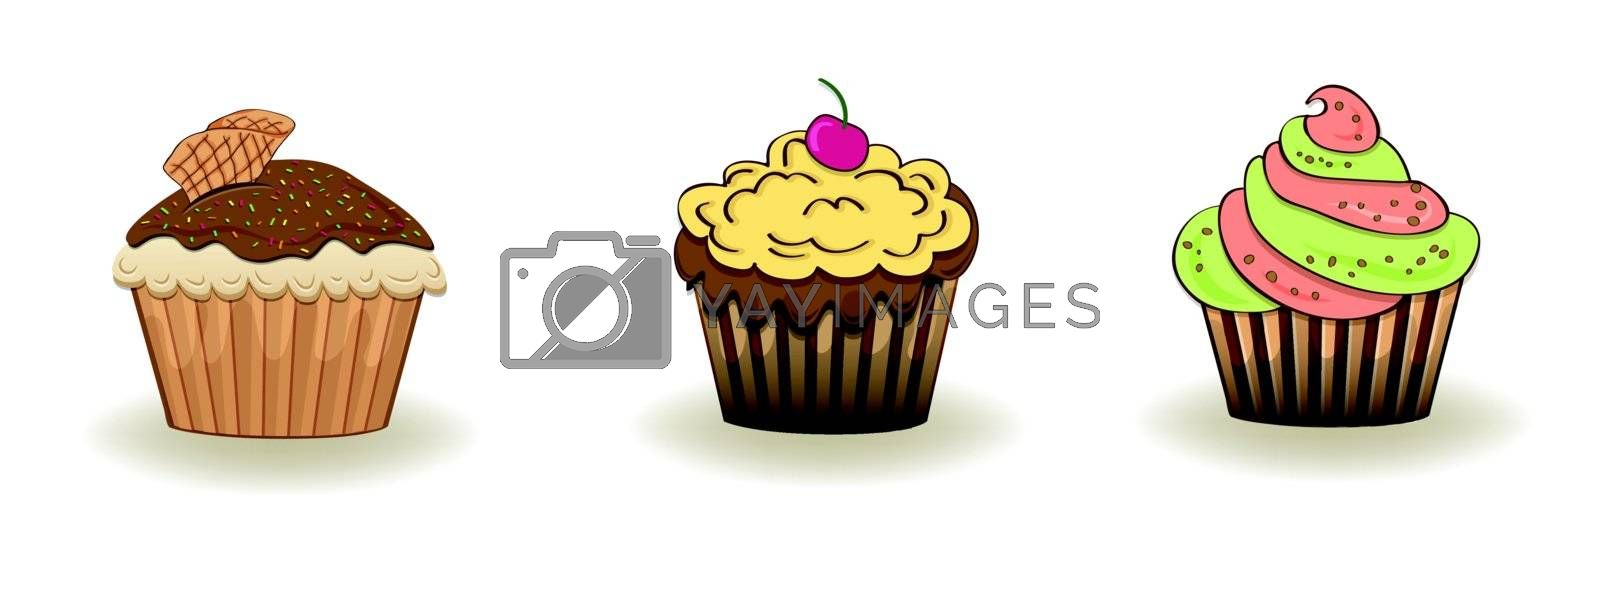 Set of 3 cute cupcakes isolated on white background